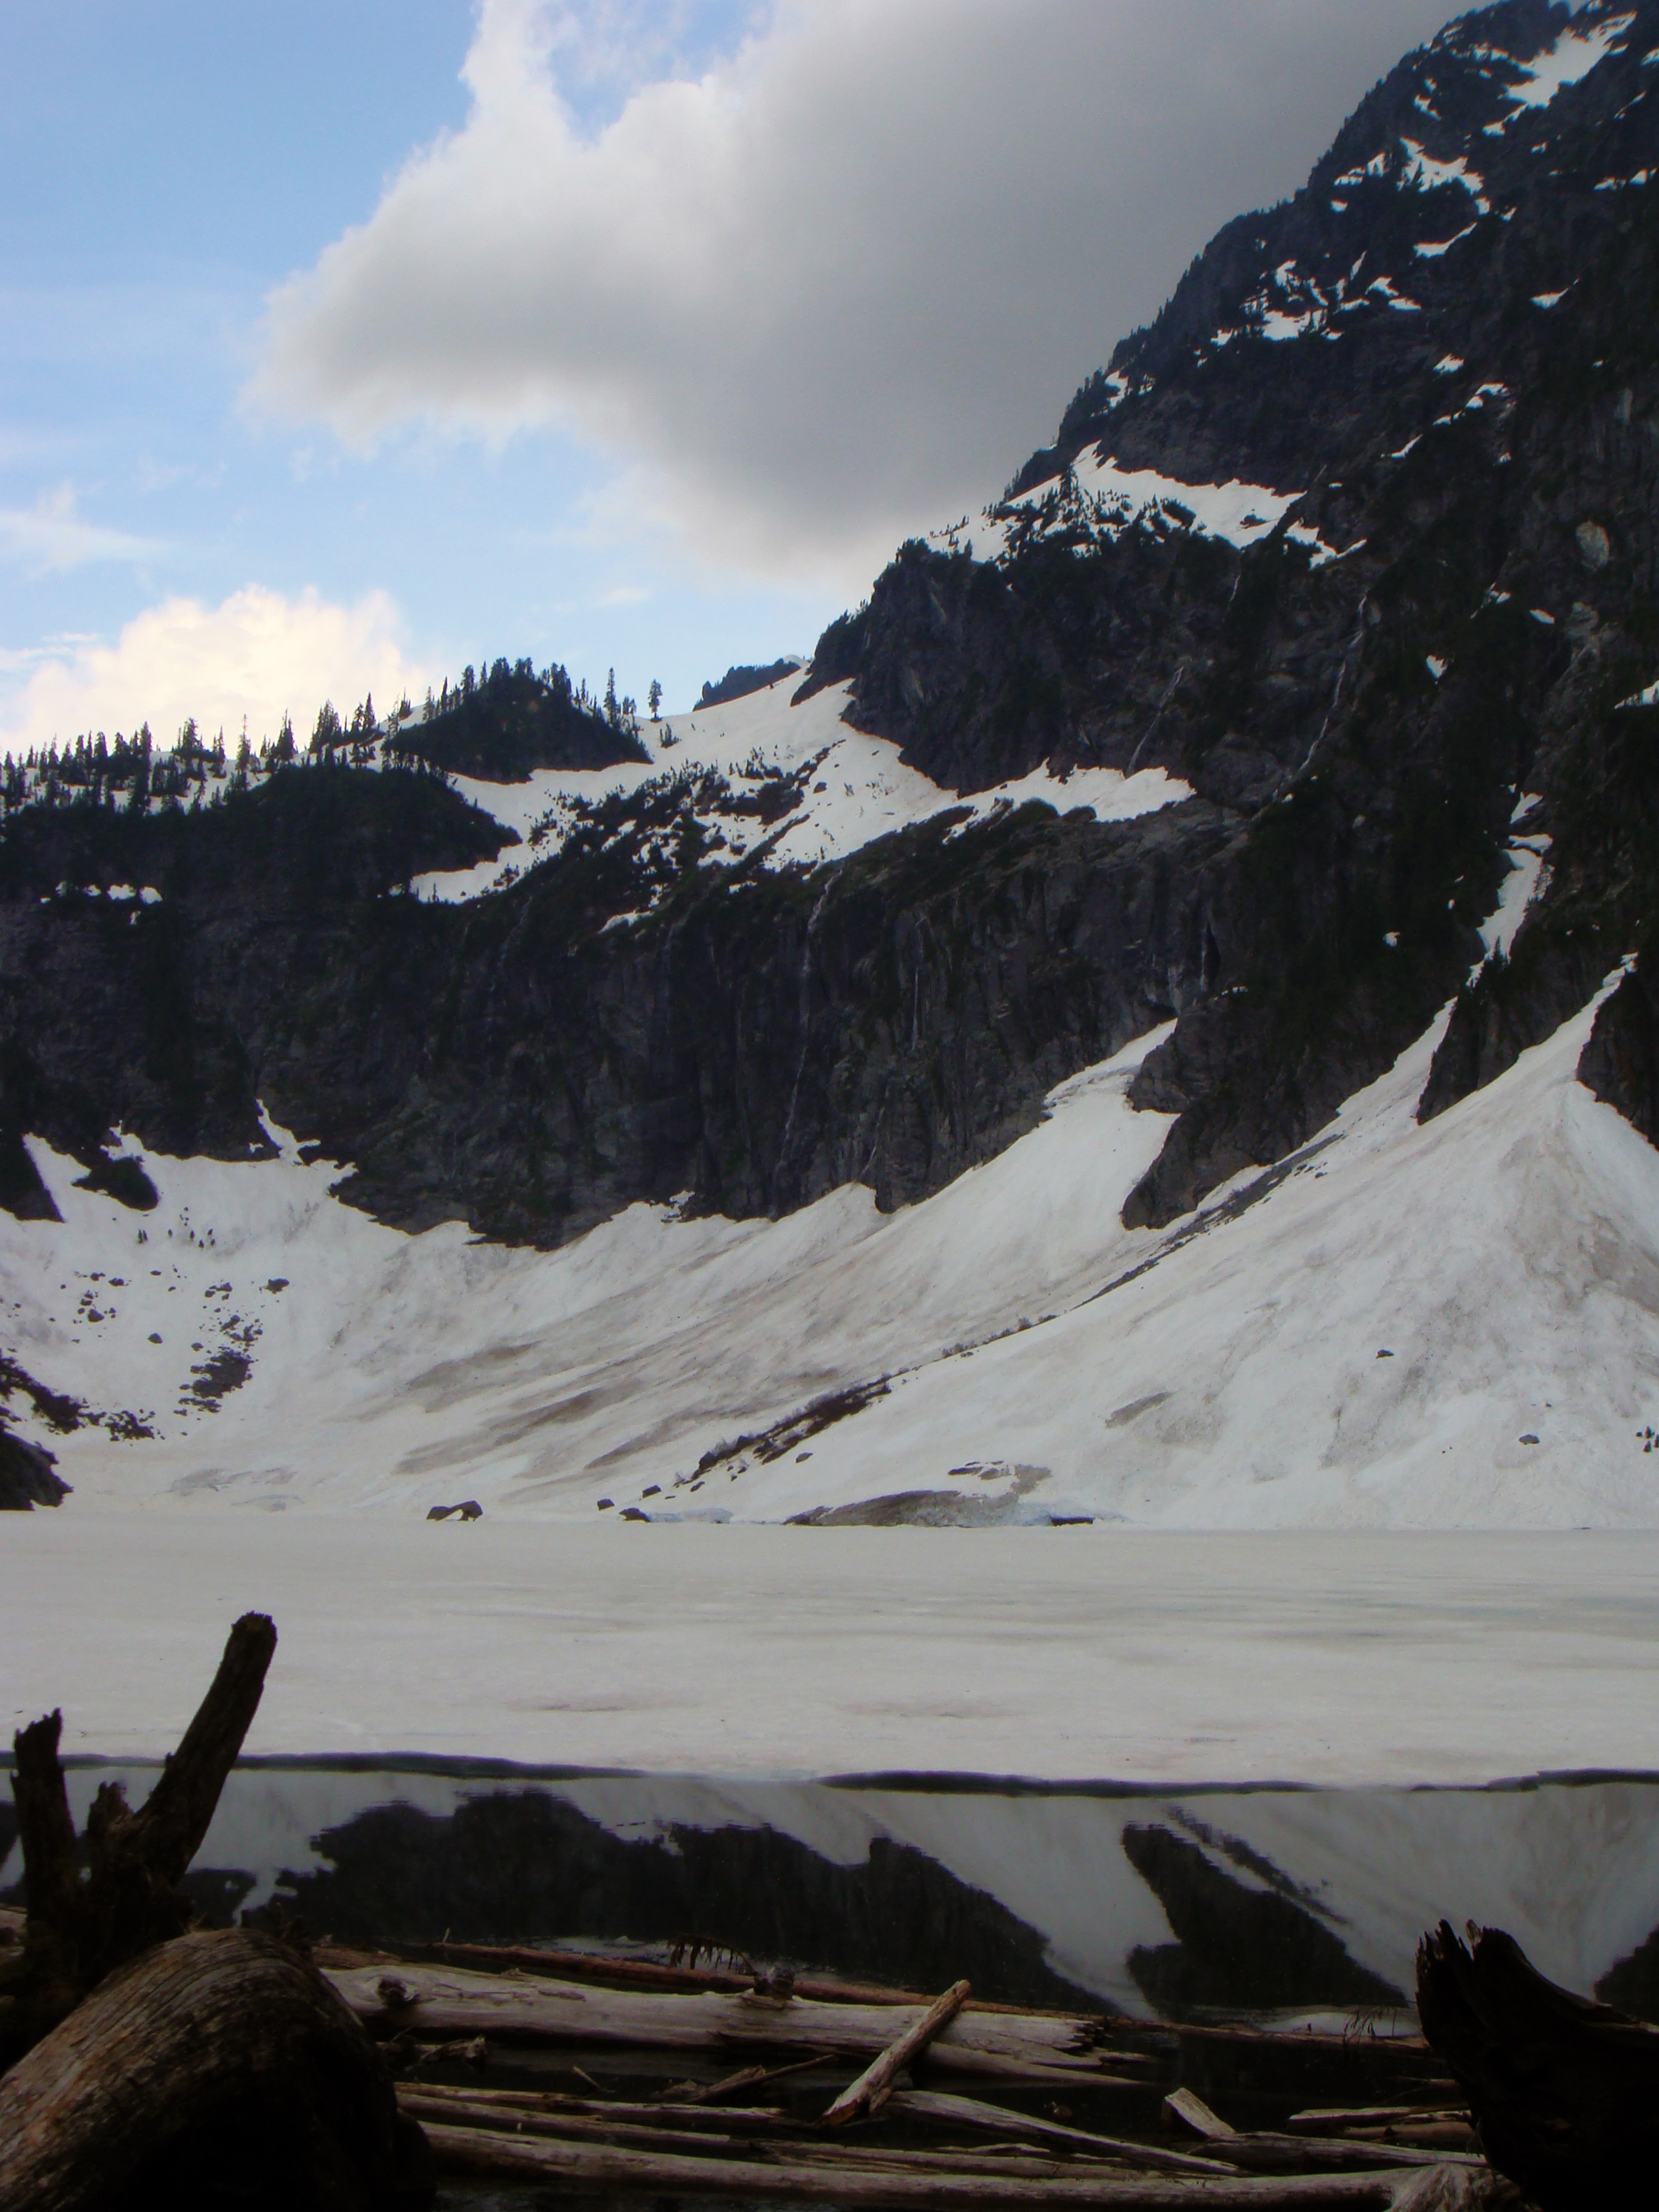 Snowy Lake Serene in 2009